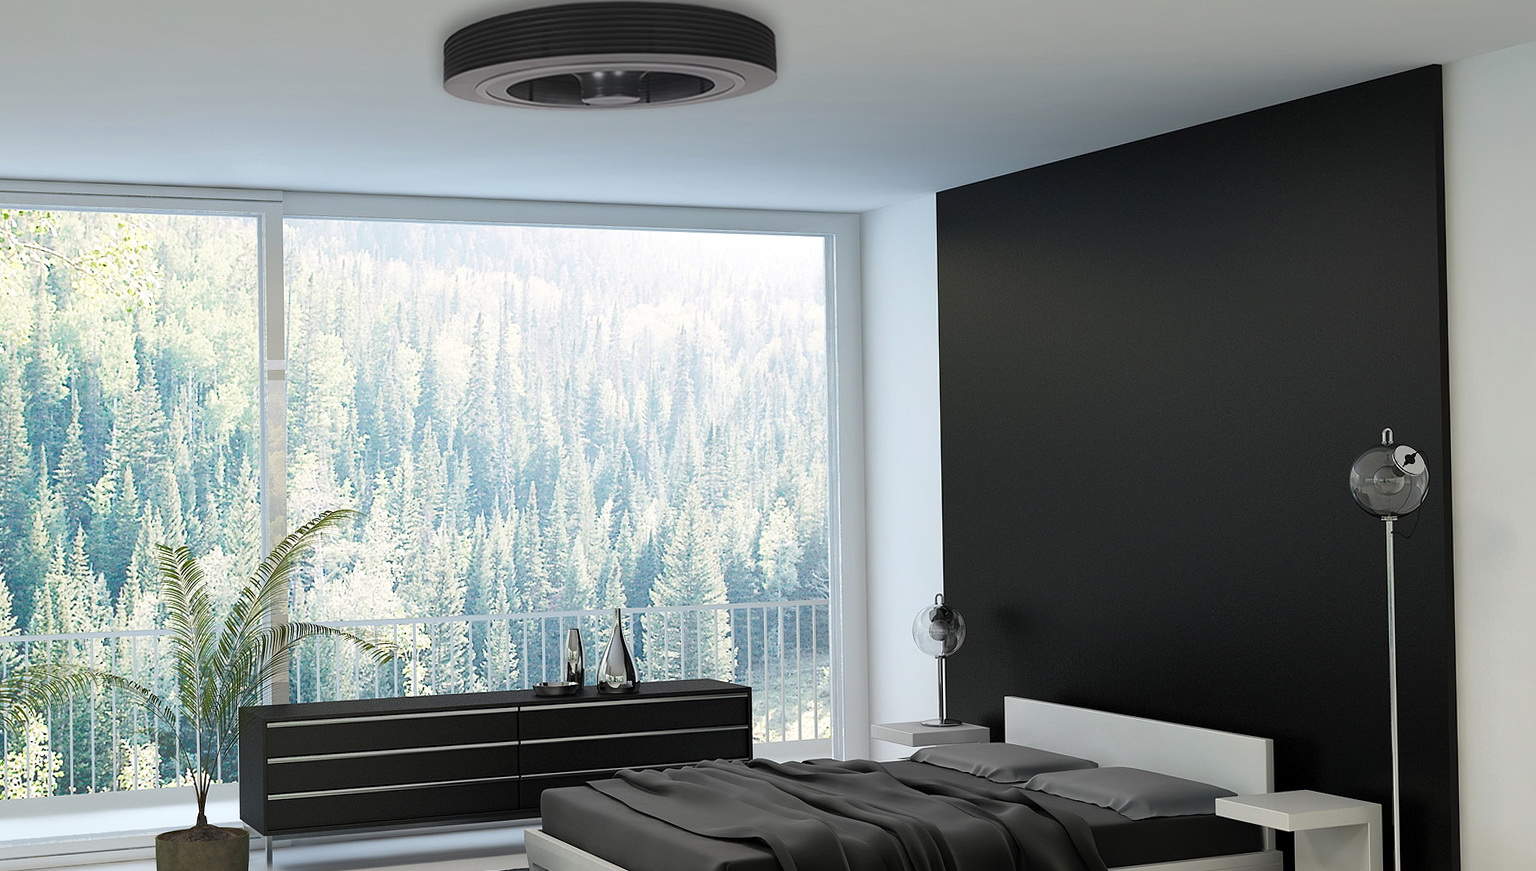 Use Bladeless Ceiling Fan for Modern Bedroom with White Bed and Grey Bedding near Long Dresser